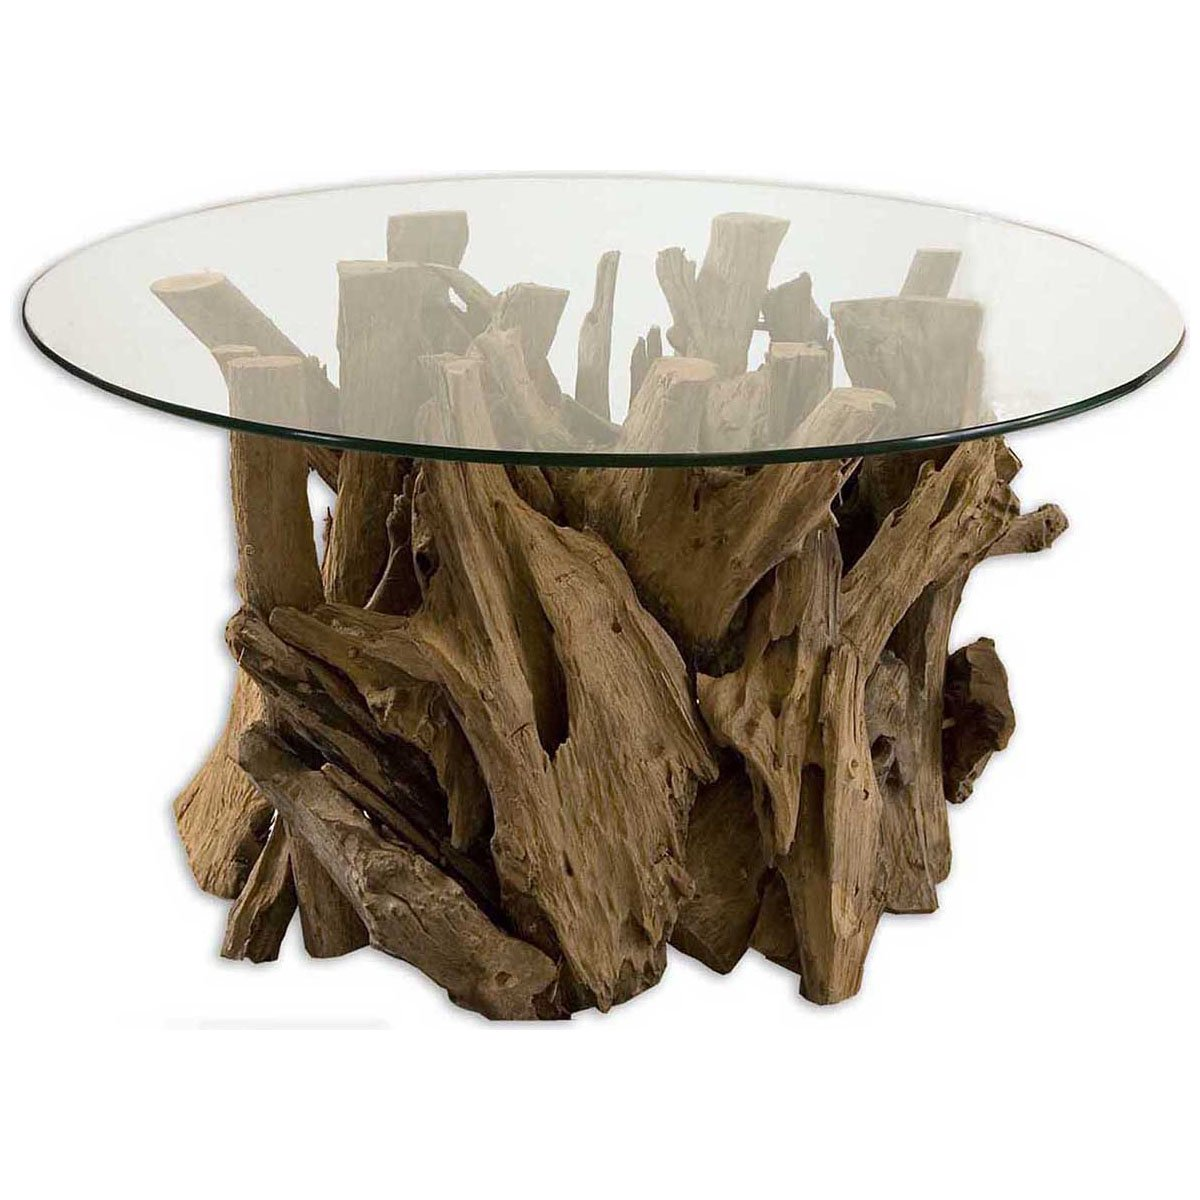 Amazon uttermost 25519 driftwood glass top cocktail table amazon uttermost 25519 driftwood glass top cocktail table kitchen dining geotapseo Gallery